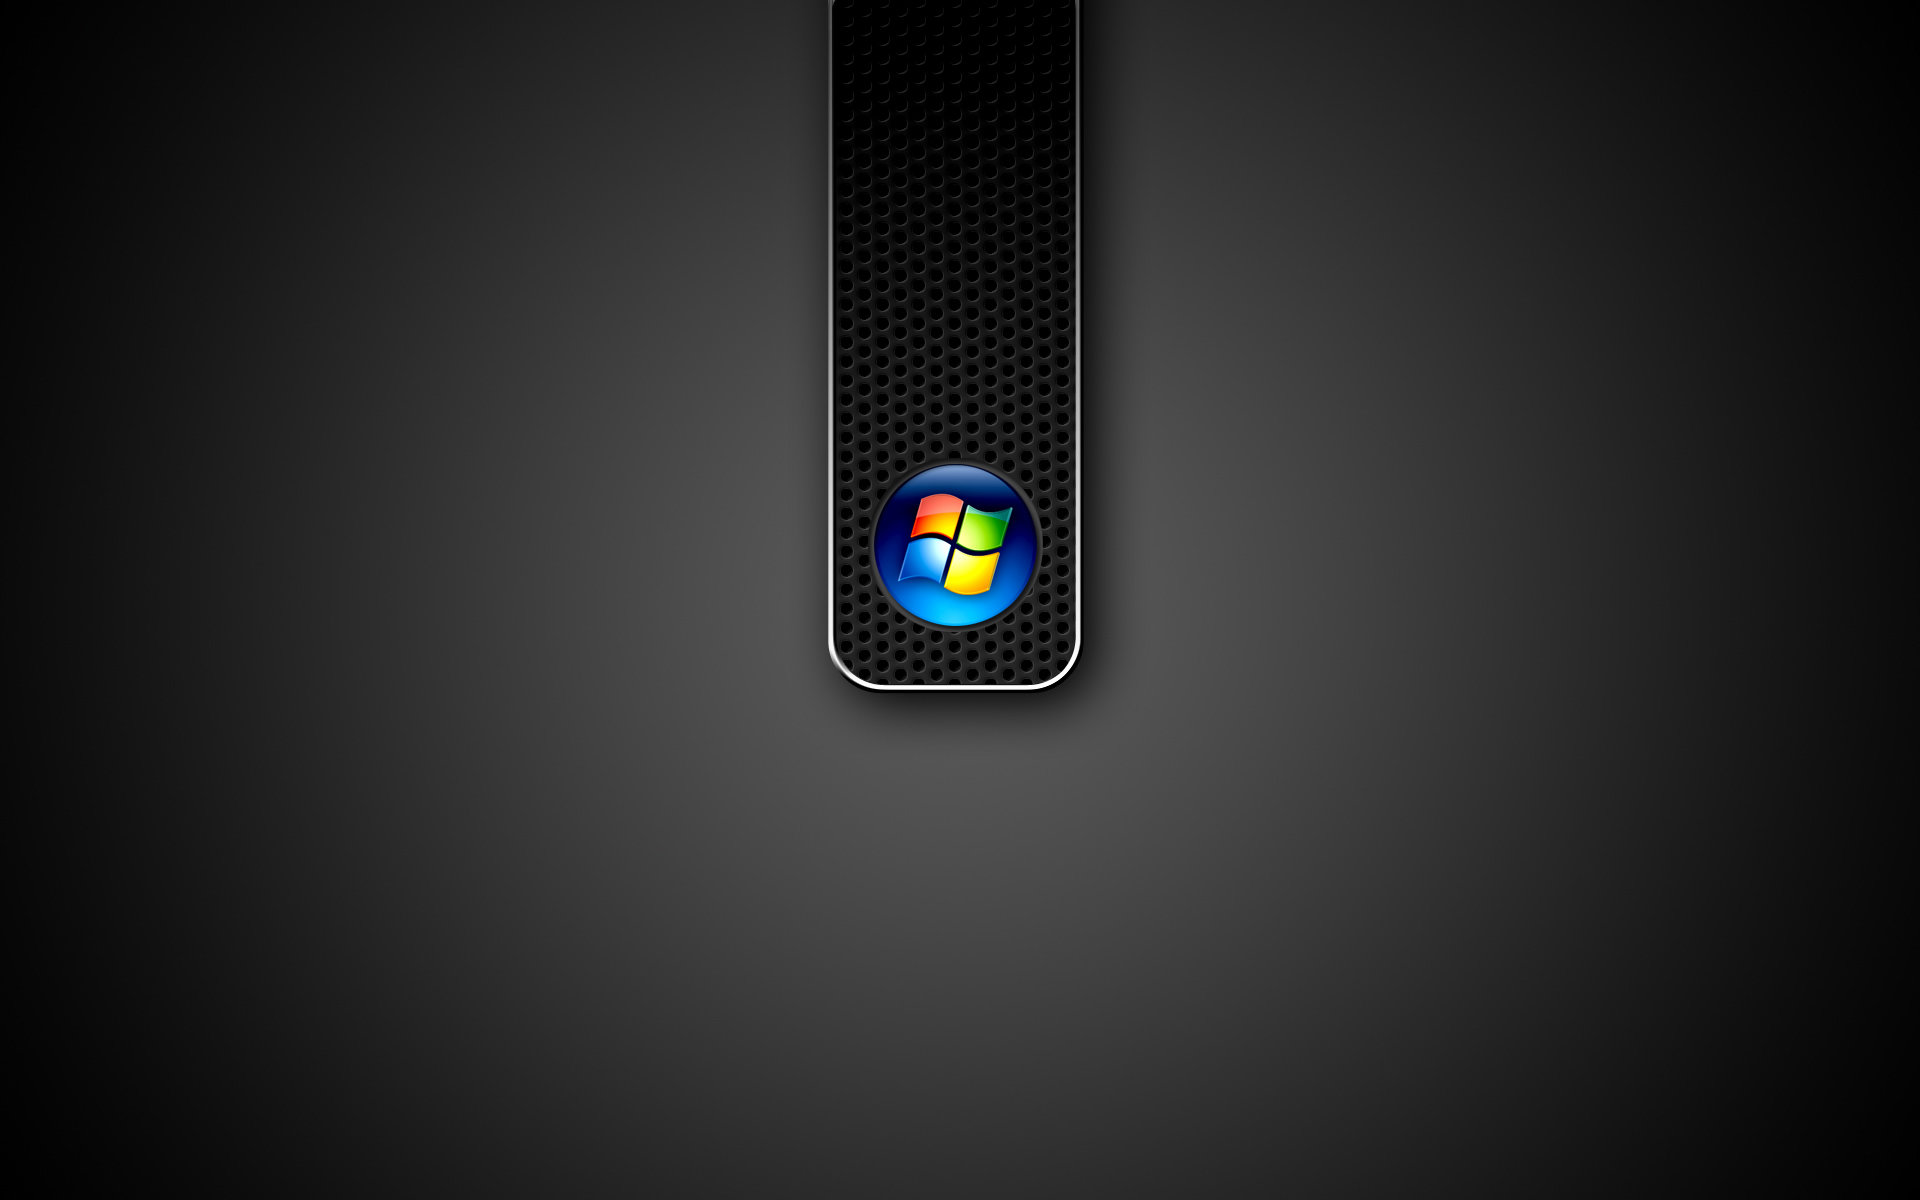 Windows 7 sign widescreen hd wllpapers with black backgrounds 1920 x 1920x1200